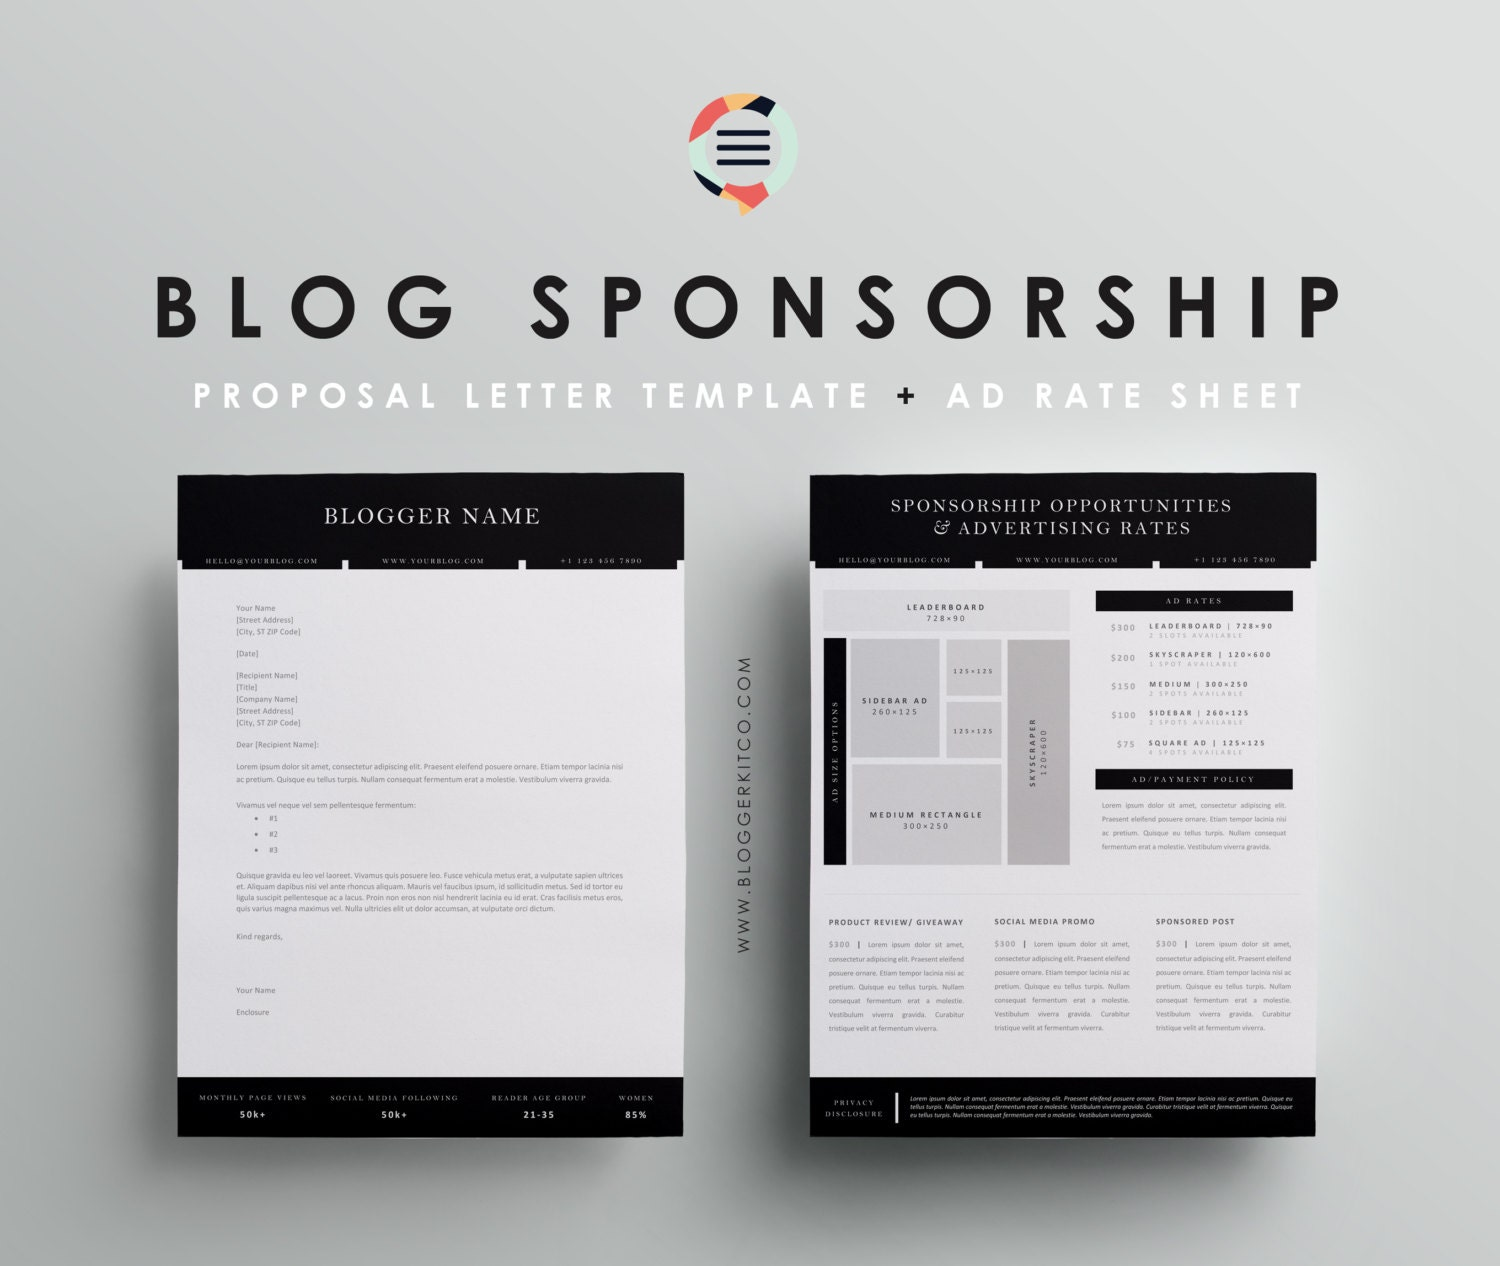 Blog Sponsorship Proposal Letter Template Ad Rate Sheet – Rate Sheet Template